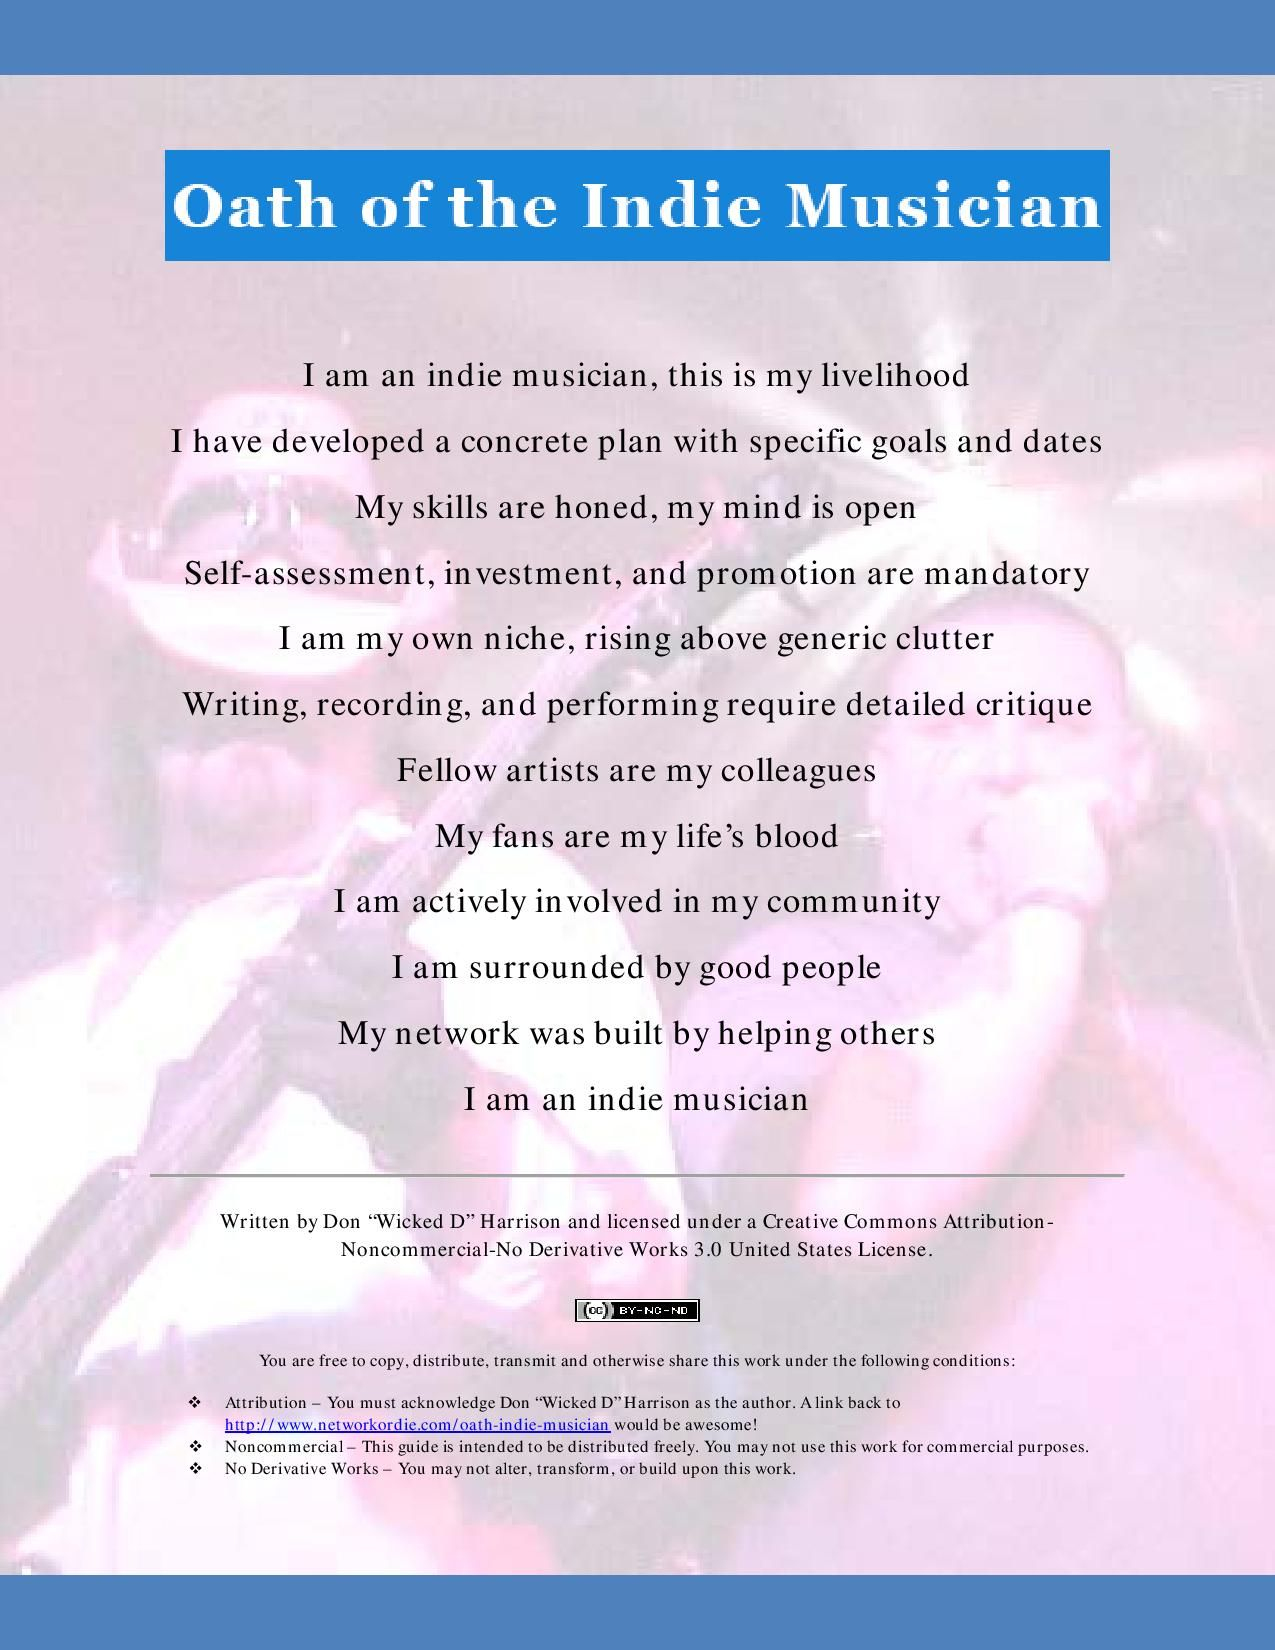 Downloadable PDF version of 'Oath of the Indie Musician